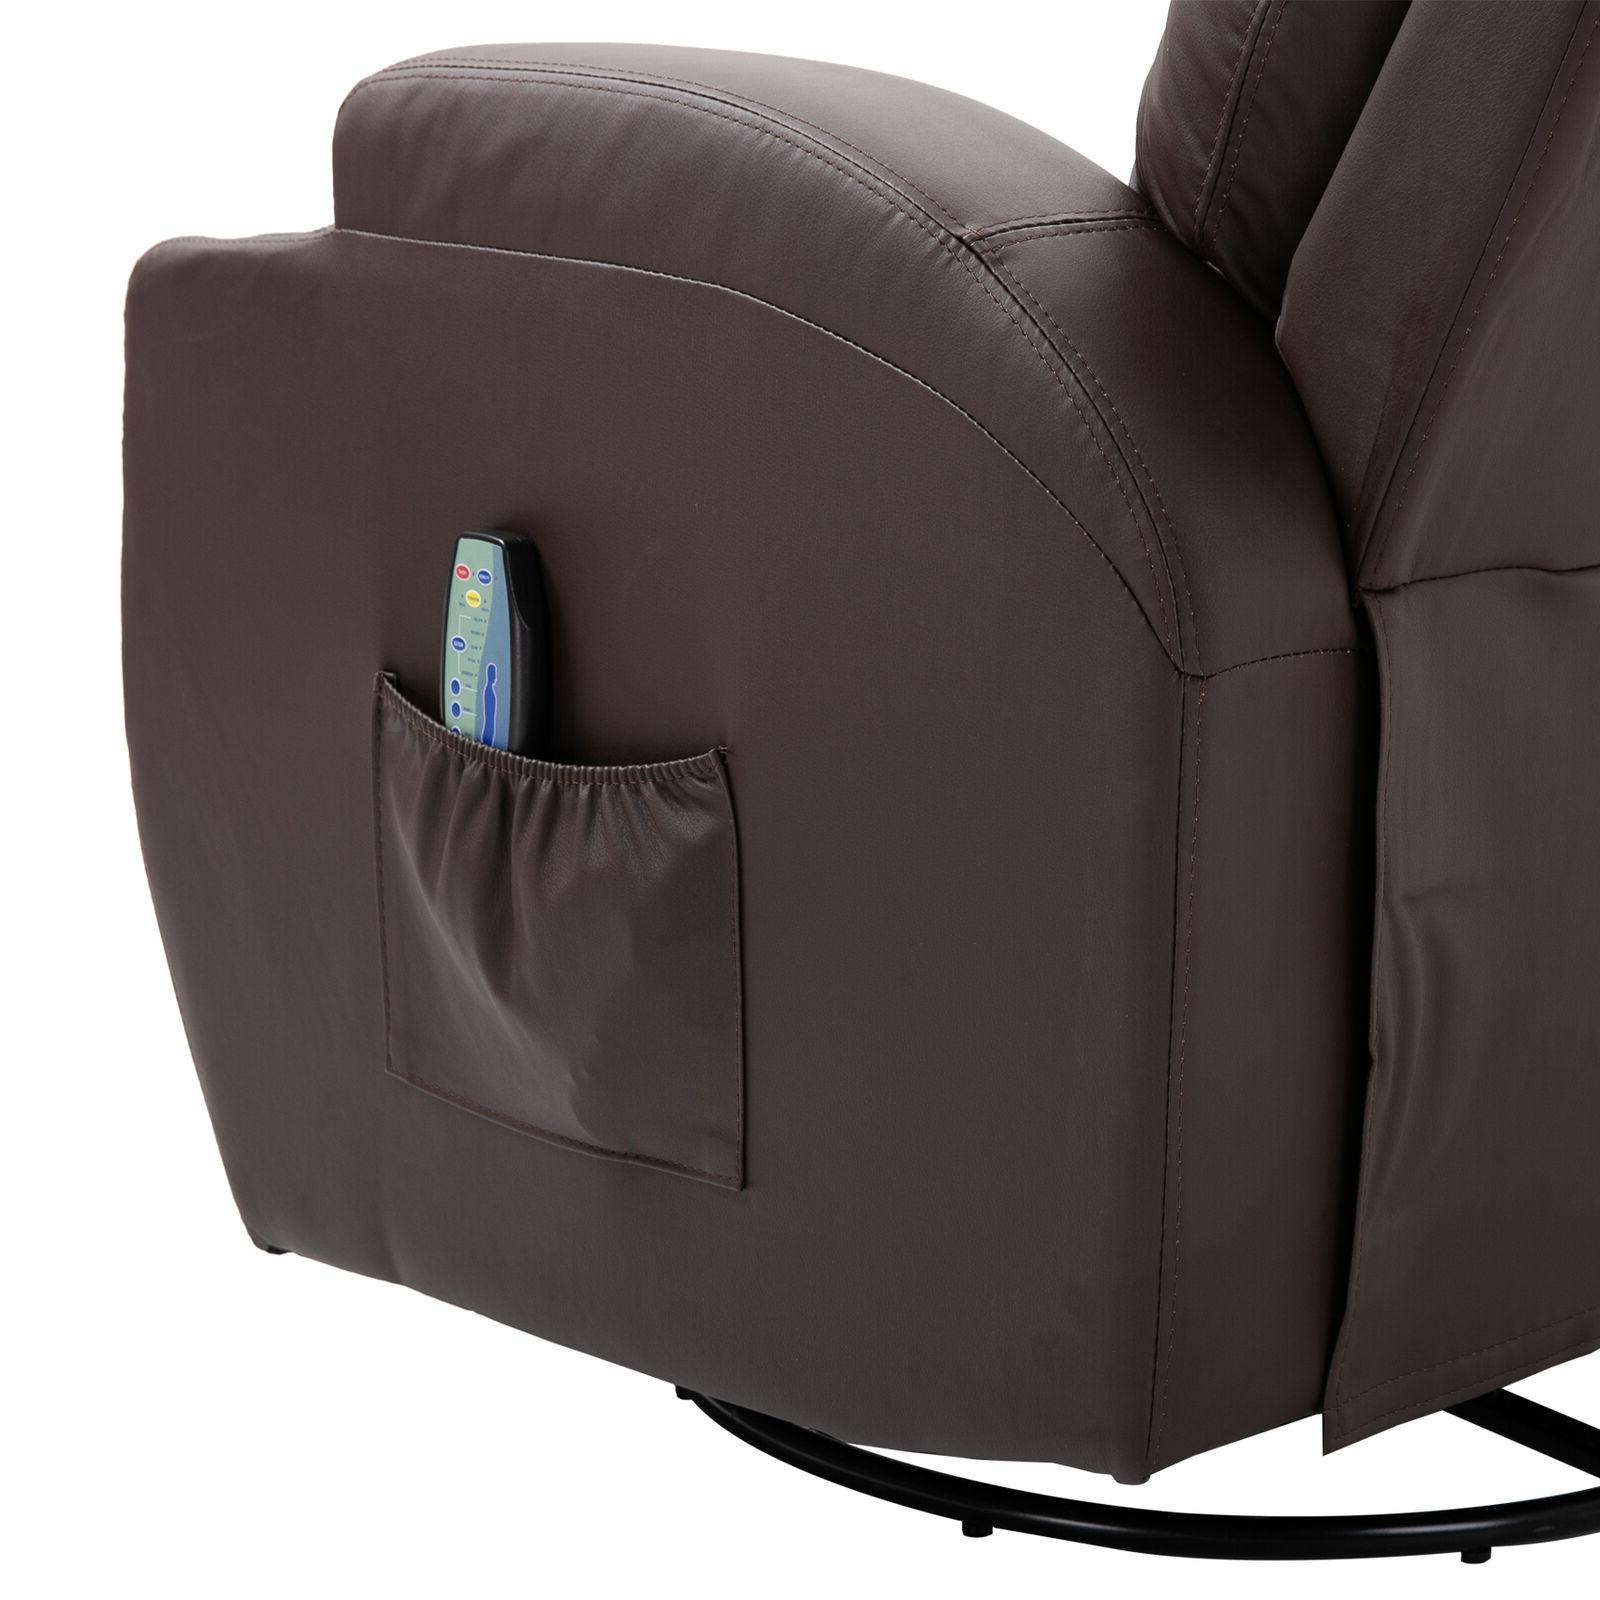 Massage Recliner Vibrating Heated Chair with Control